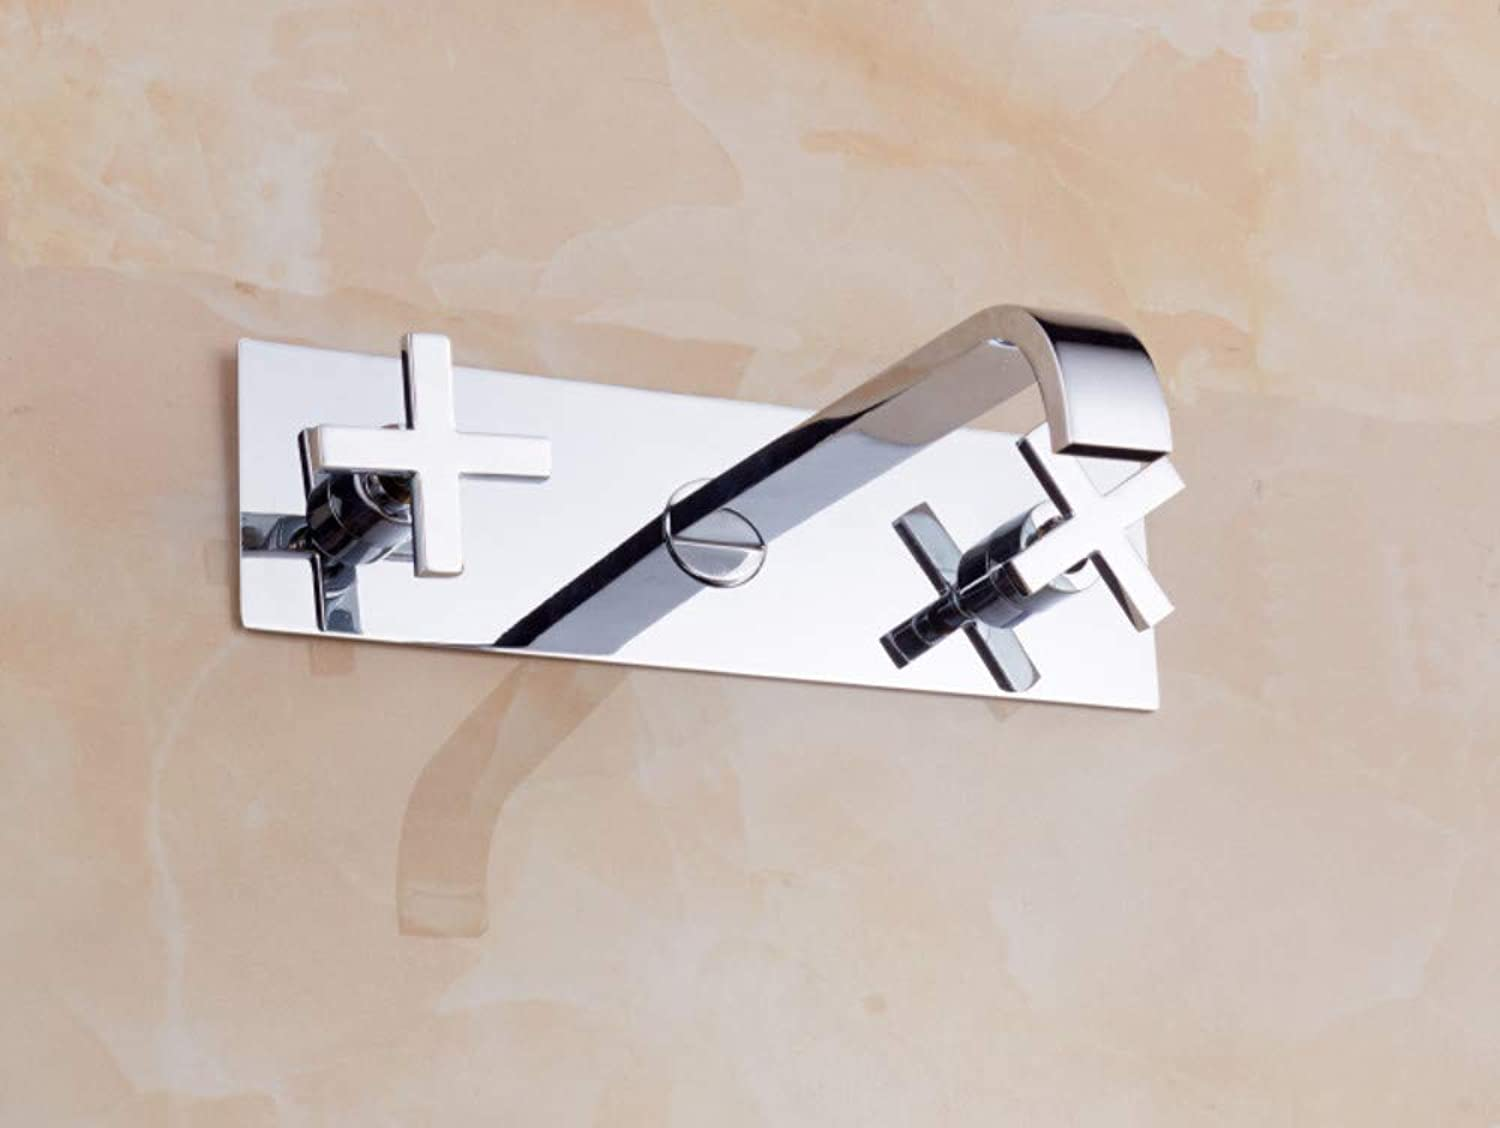 Kitchen Sink Taps Bathroom Sink Taps Copper Square Wall-Mounted Concealed Three-Hole Split Faucet Basin Faucet Conjoined Concealed Basin Faucet